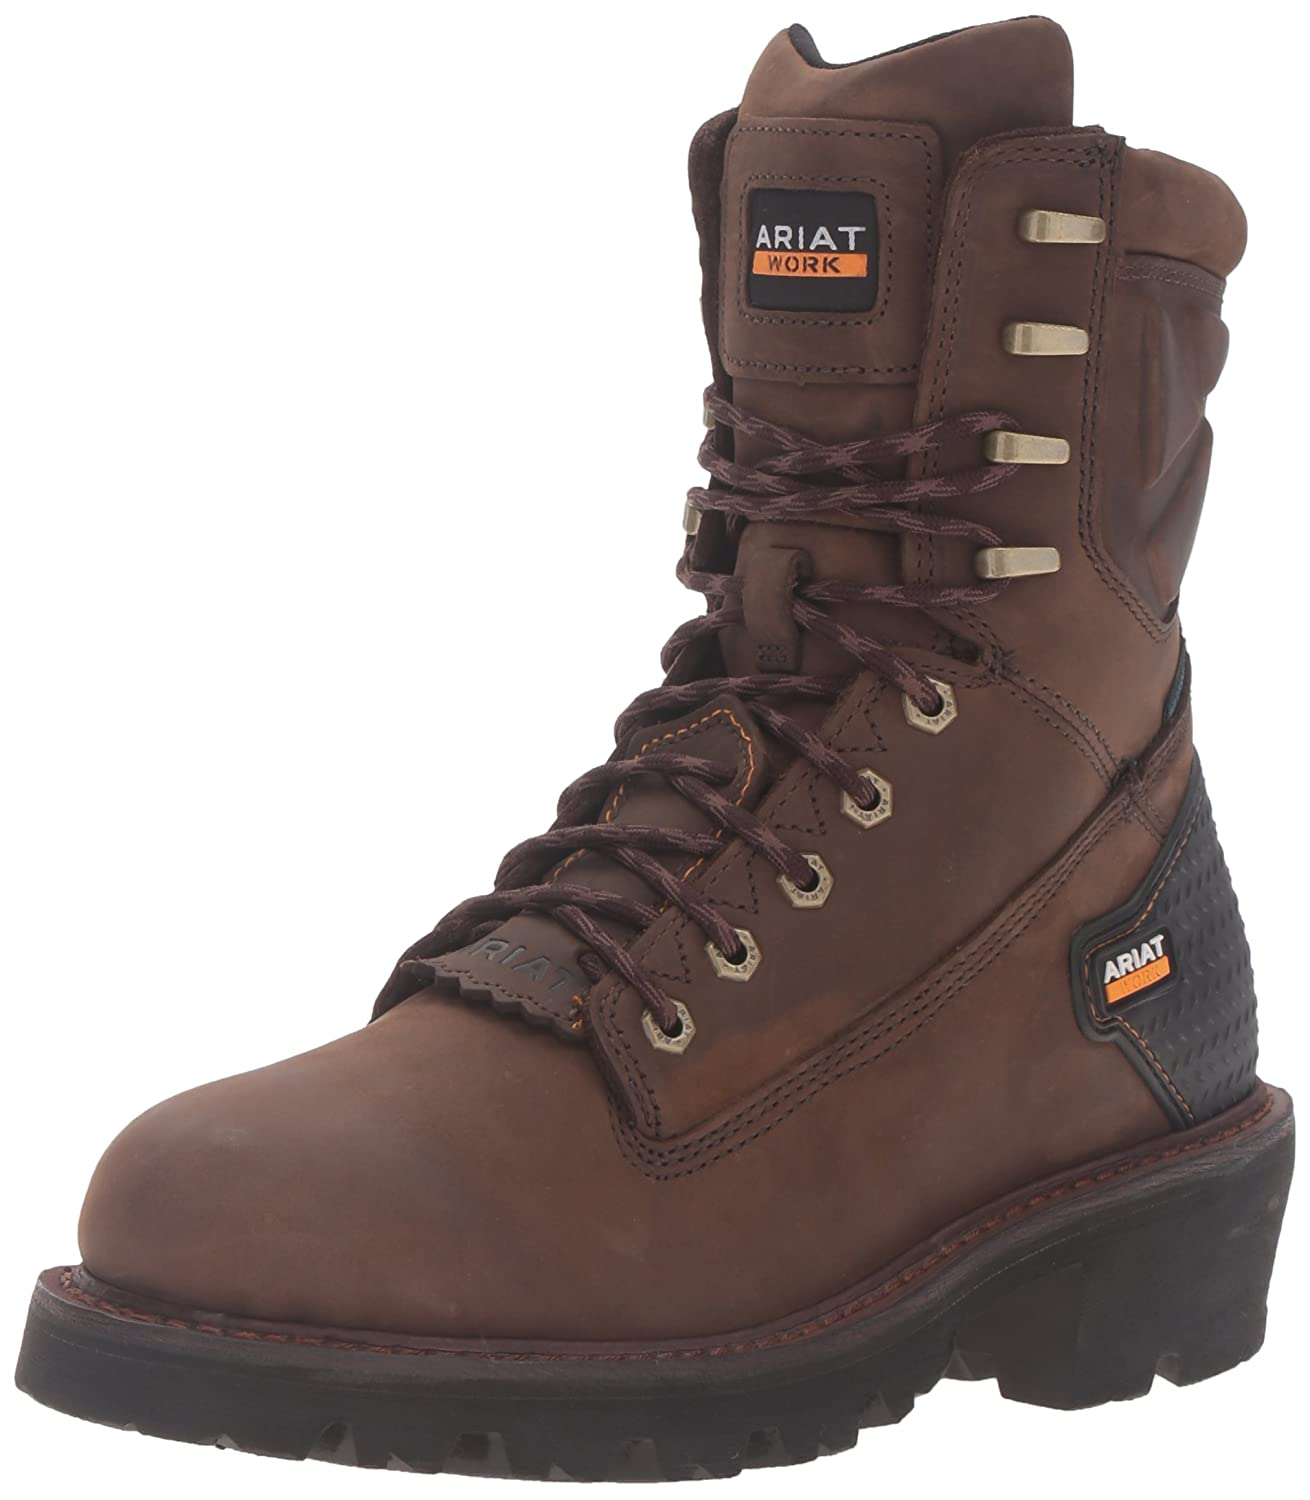 Ariat メンズ Oily Distressed Brown 8 D(M) US 8 D(M) USOily Distressed Brown B01BL65VQ4